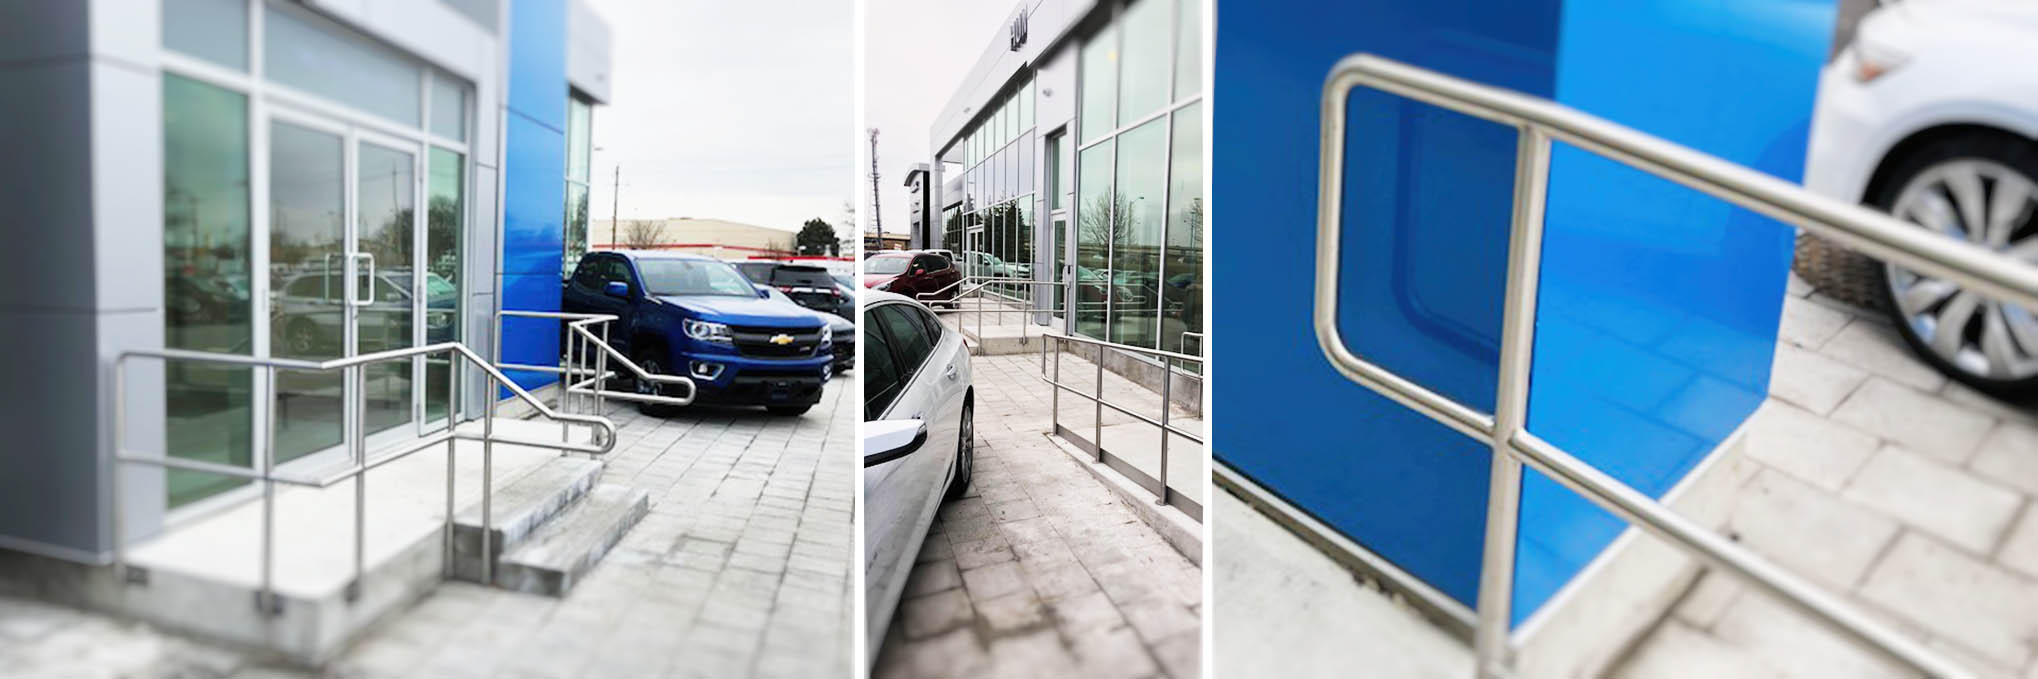 Humberview Chevrolet Buick GMC